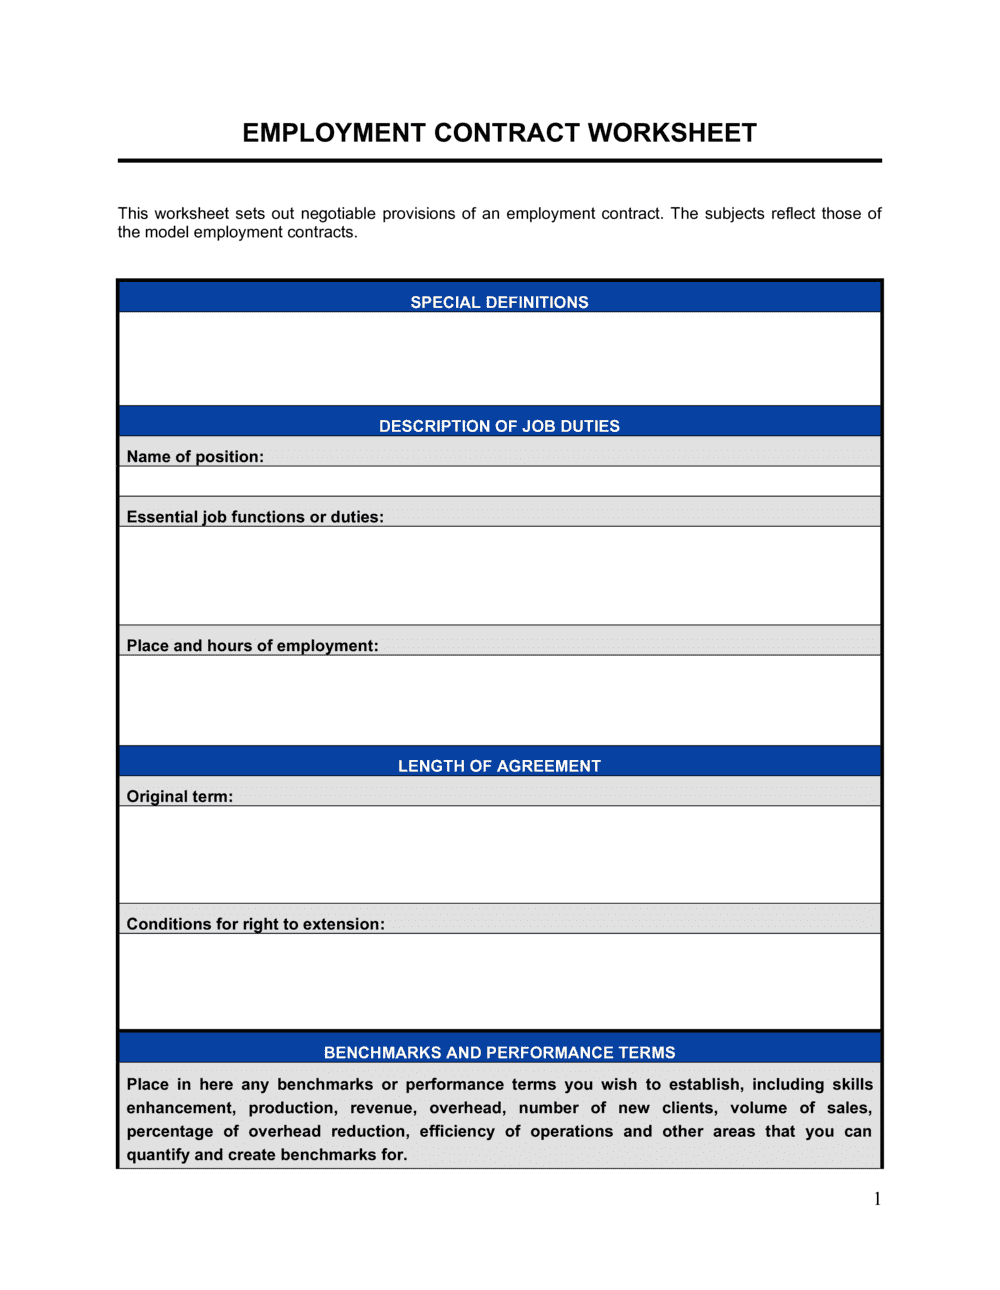 Business-in-a-Box's Employment Contract Worksheet Template